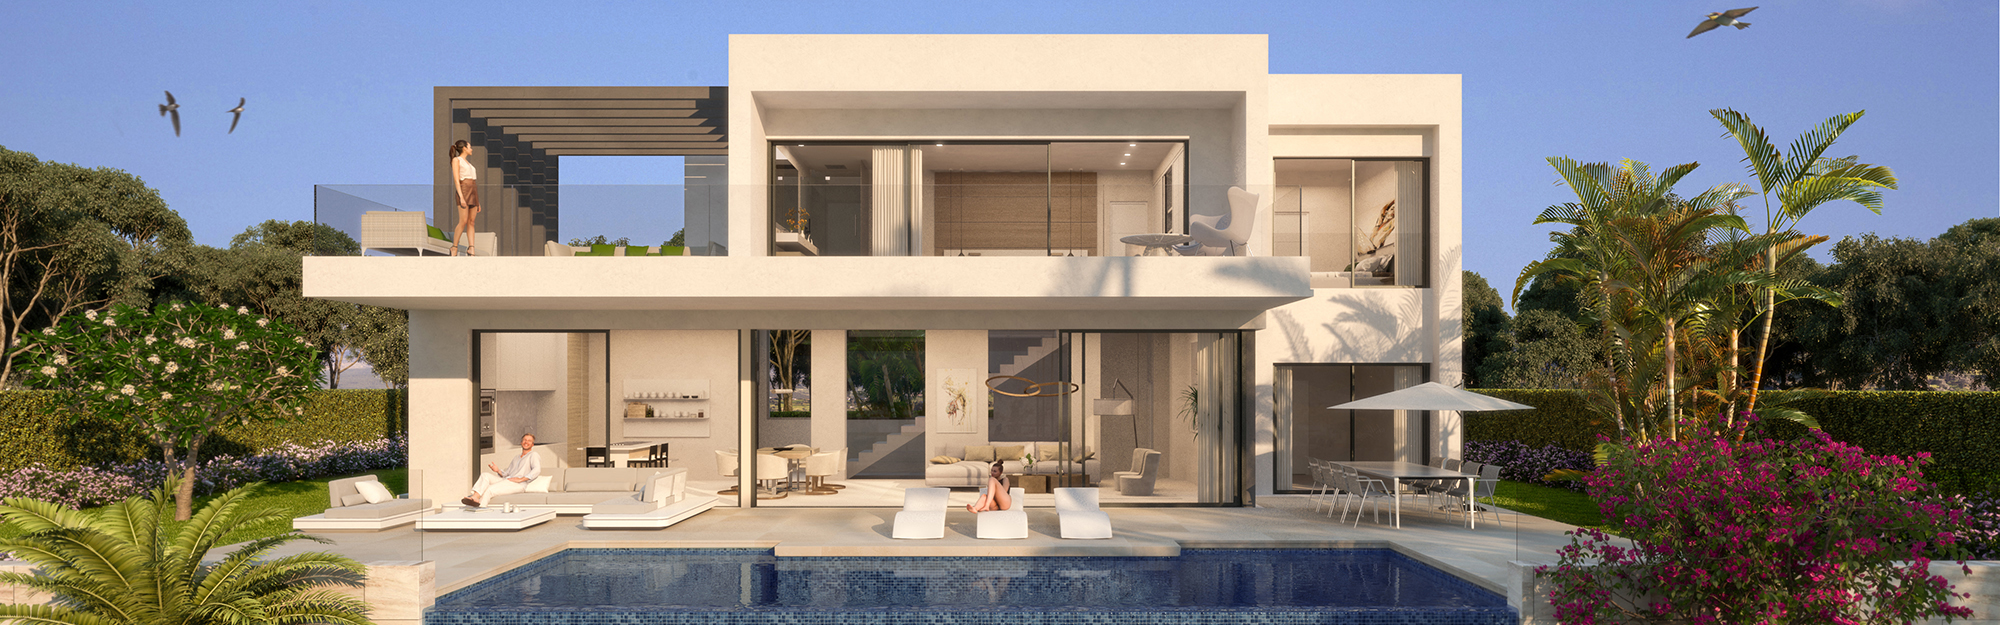 Estepona - Modern new villas in a gated community